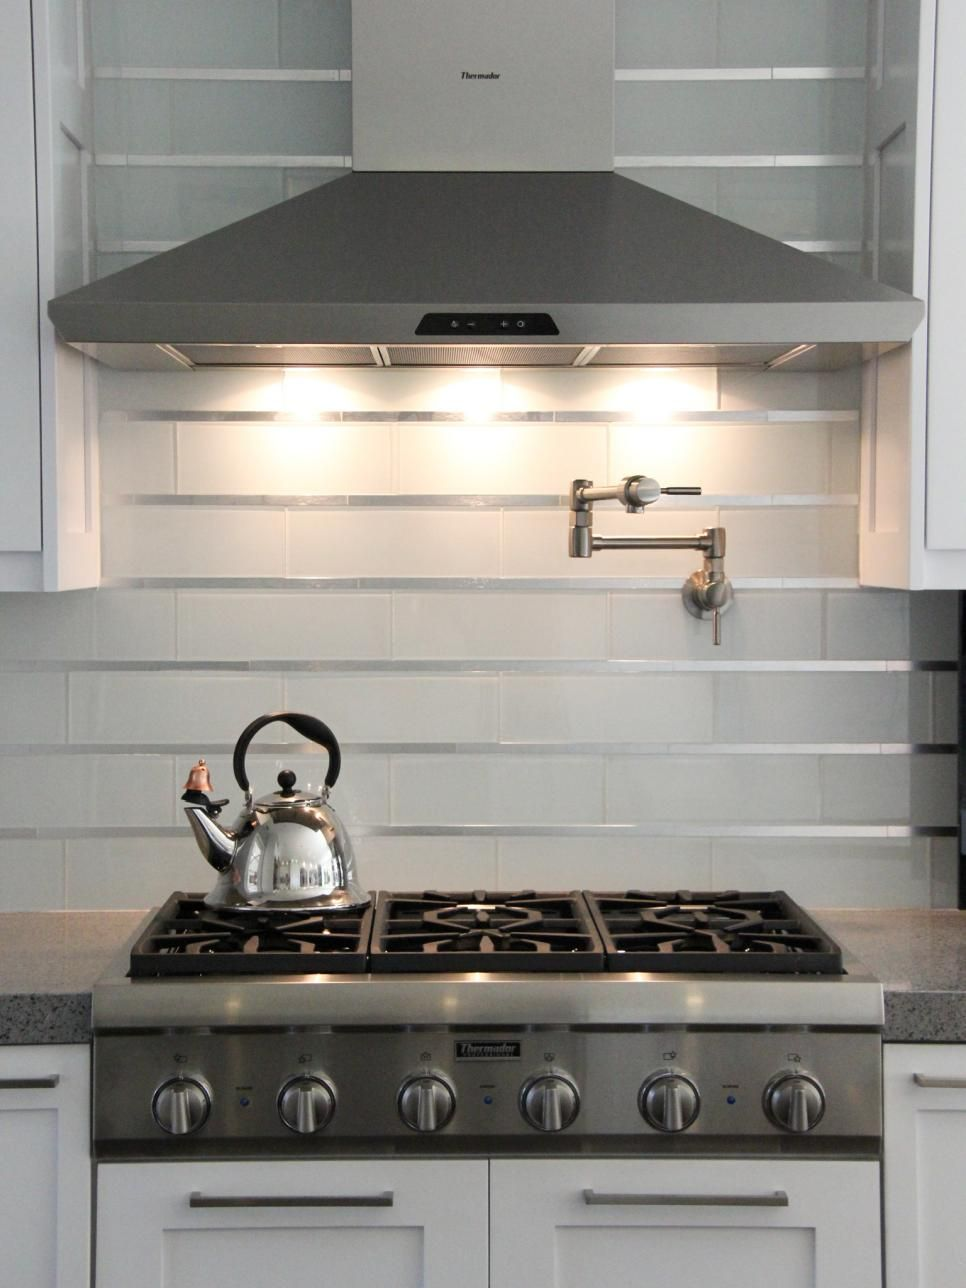 20 stainless steel kitchen backsplashes subway tiles